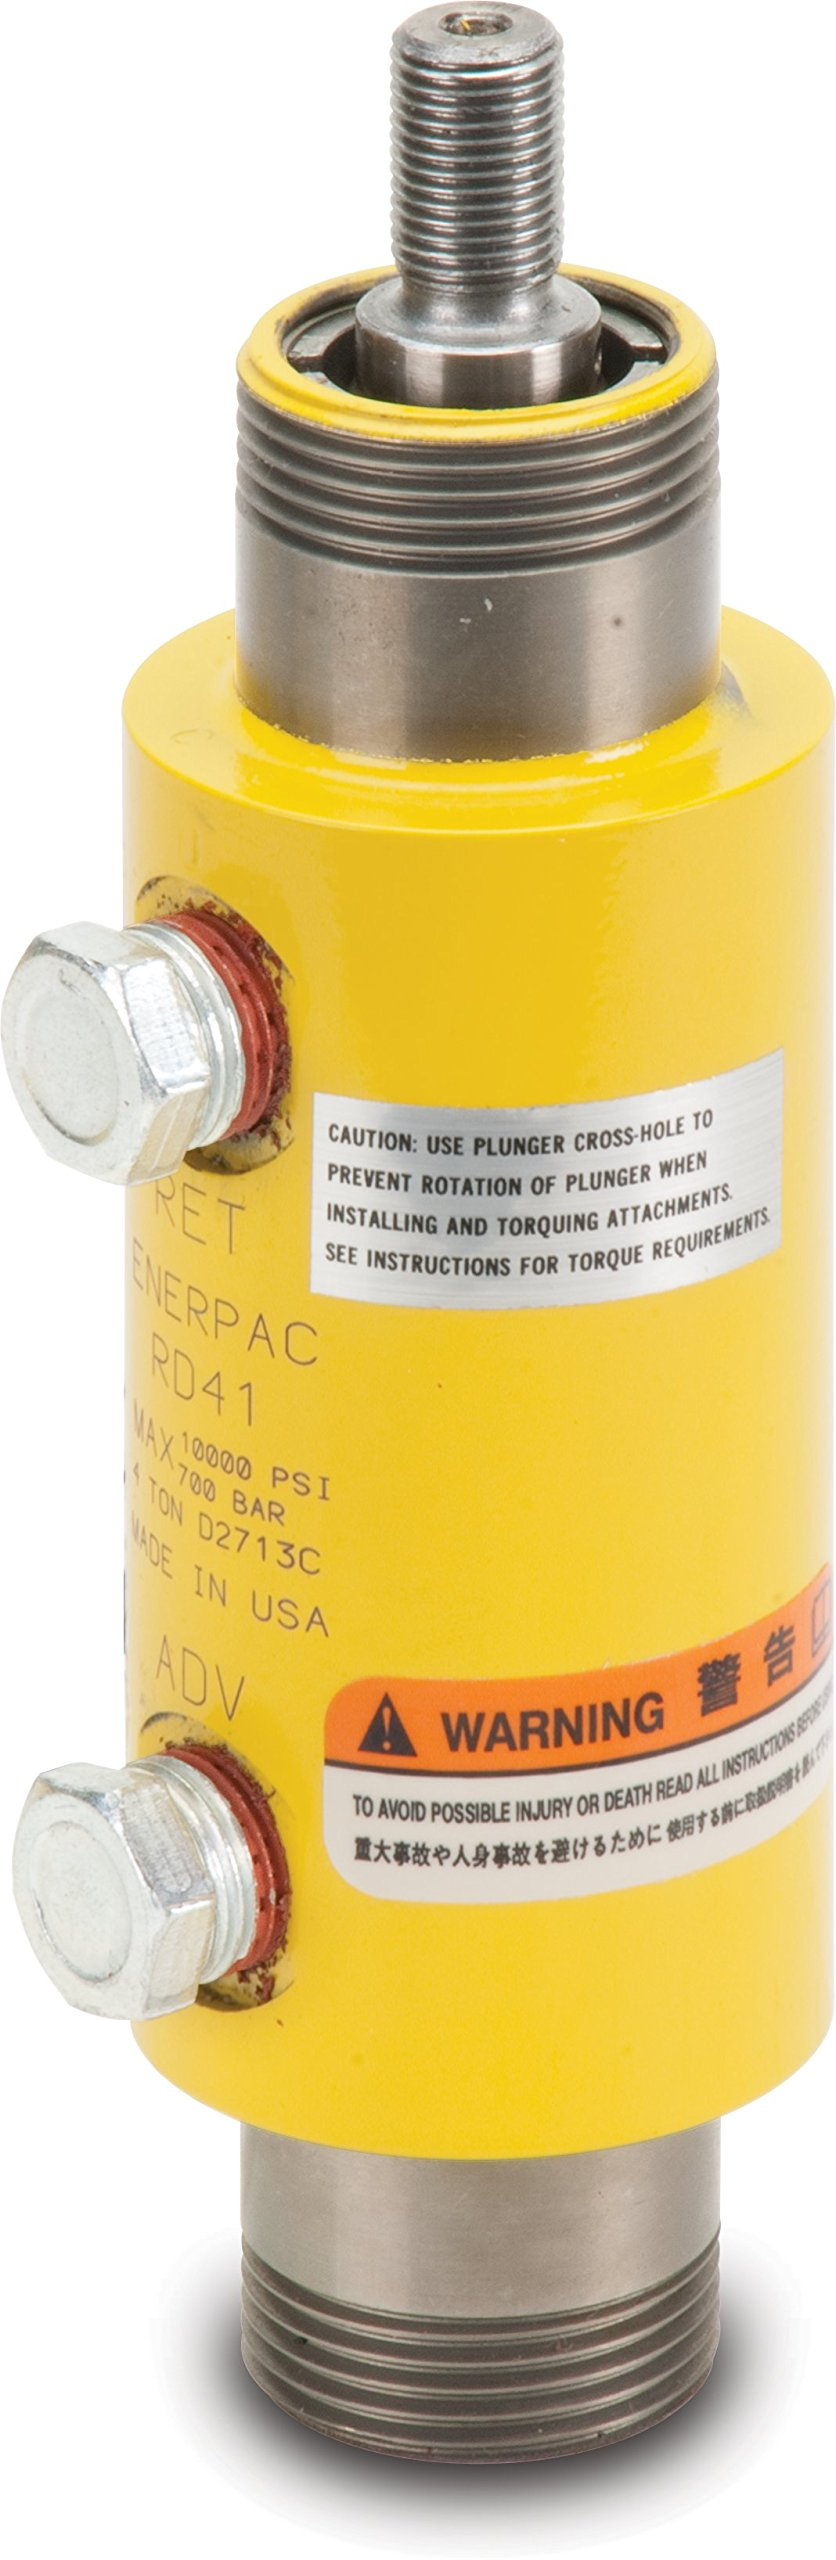 Enerpac RD-43 Double-Acting Precision Hydraulic Cylinder with 4 Ton Capacity, Double Port, 3.13'' Stroke Length